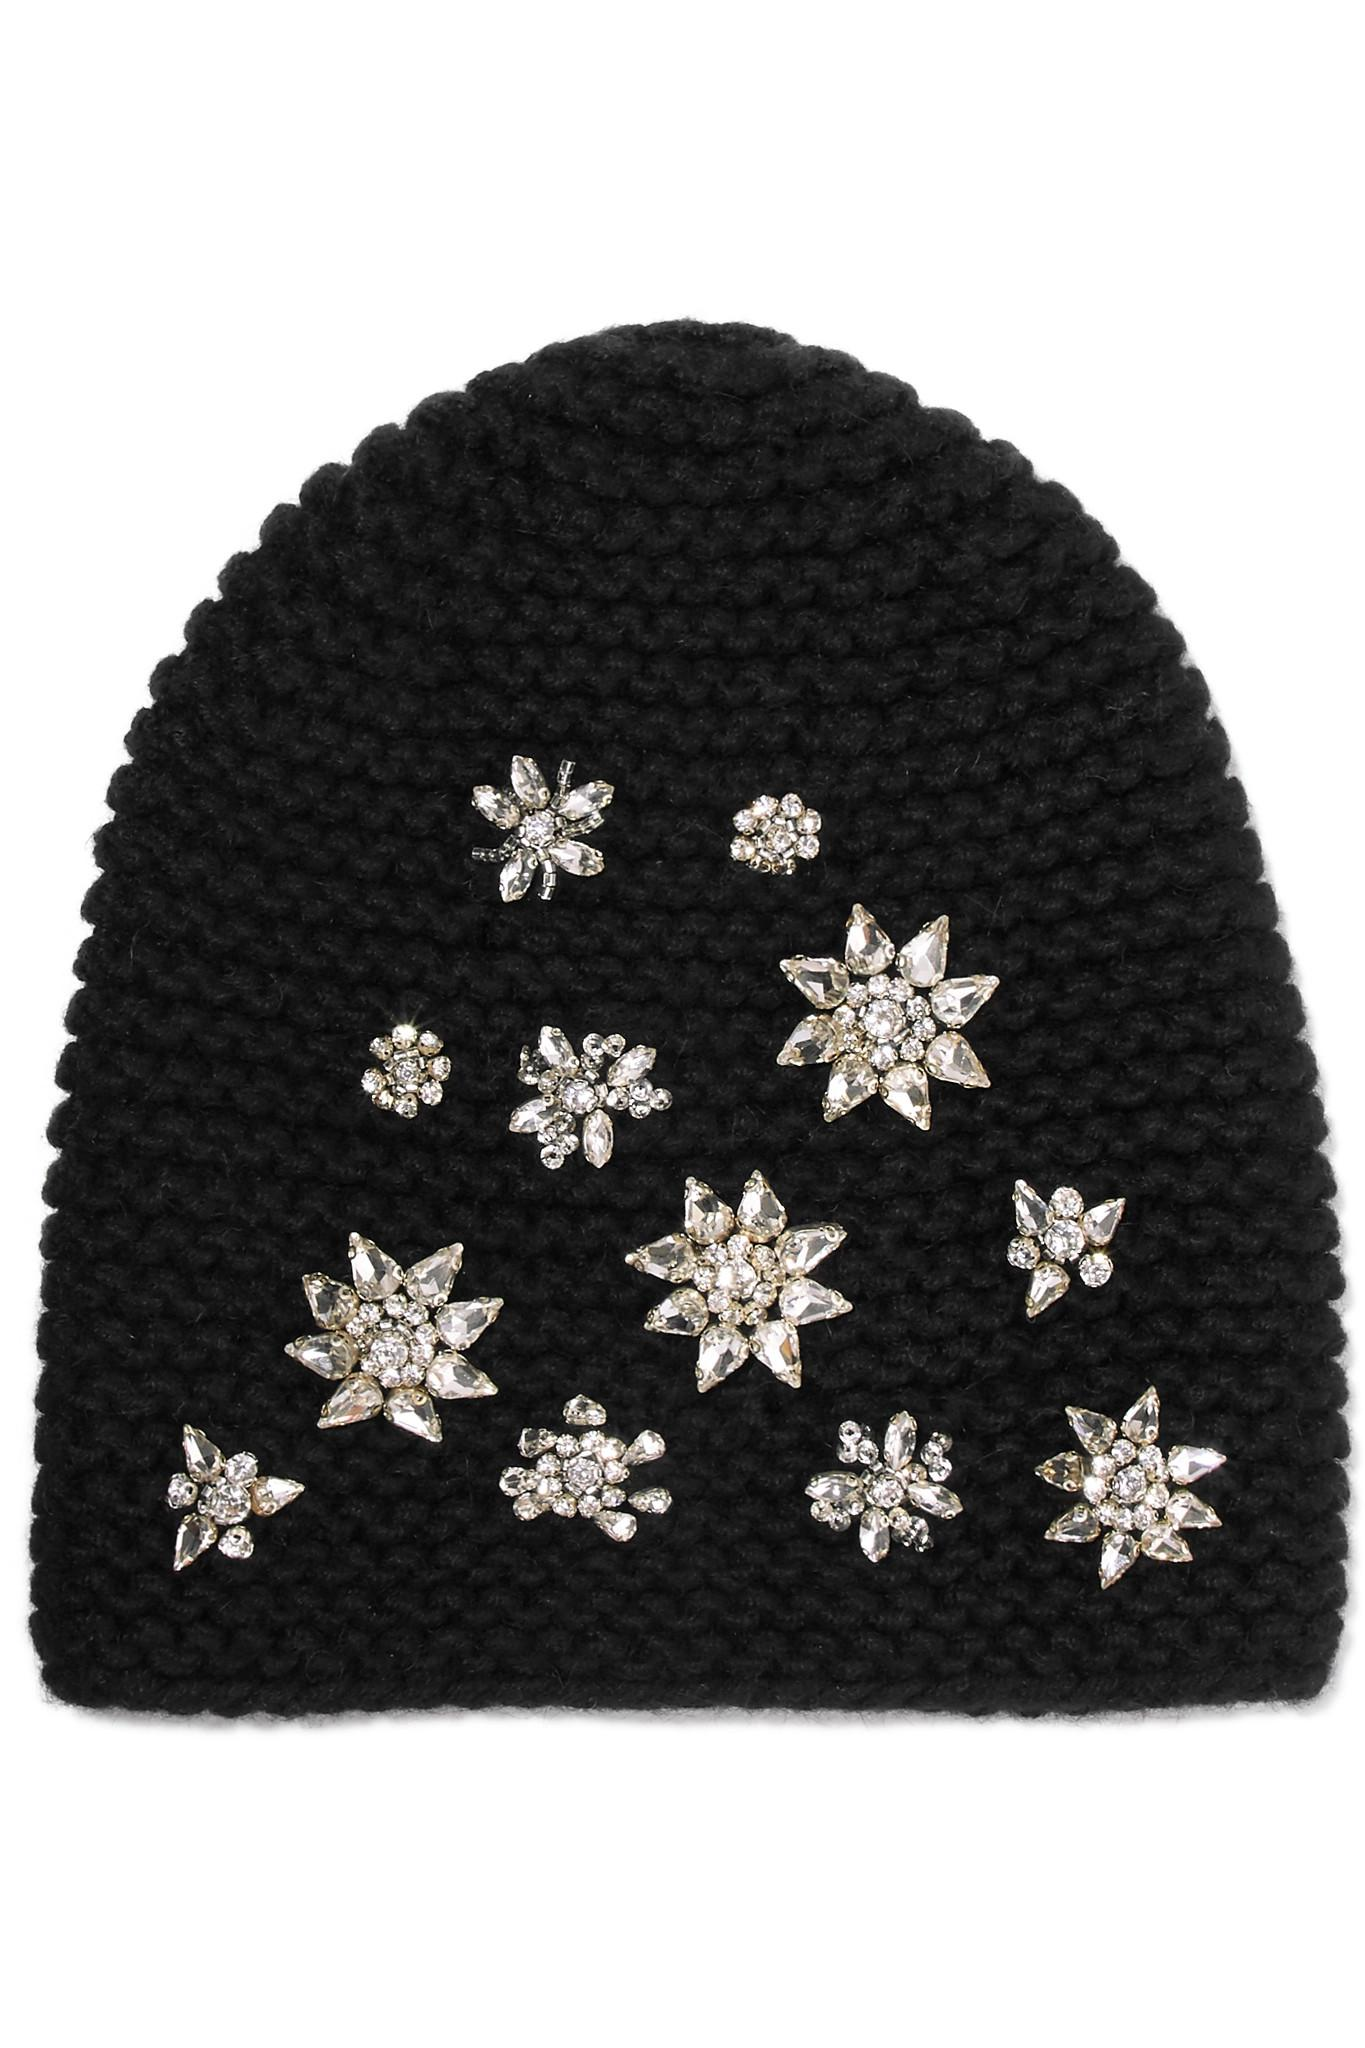 19a5018cf88 Jennifer Behr Crystal-embellished Alpaca Beanie in Black - Lyst